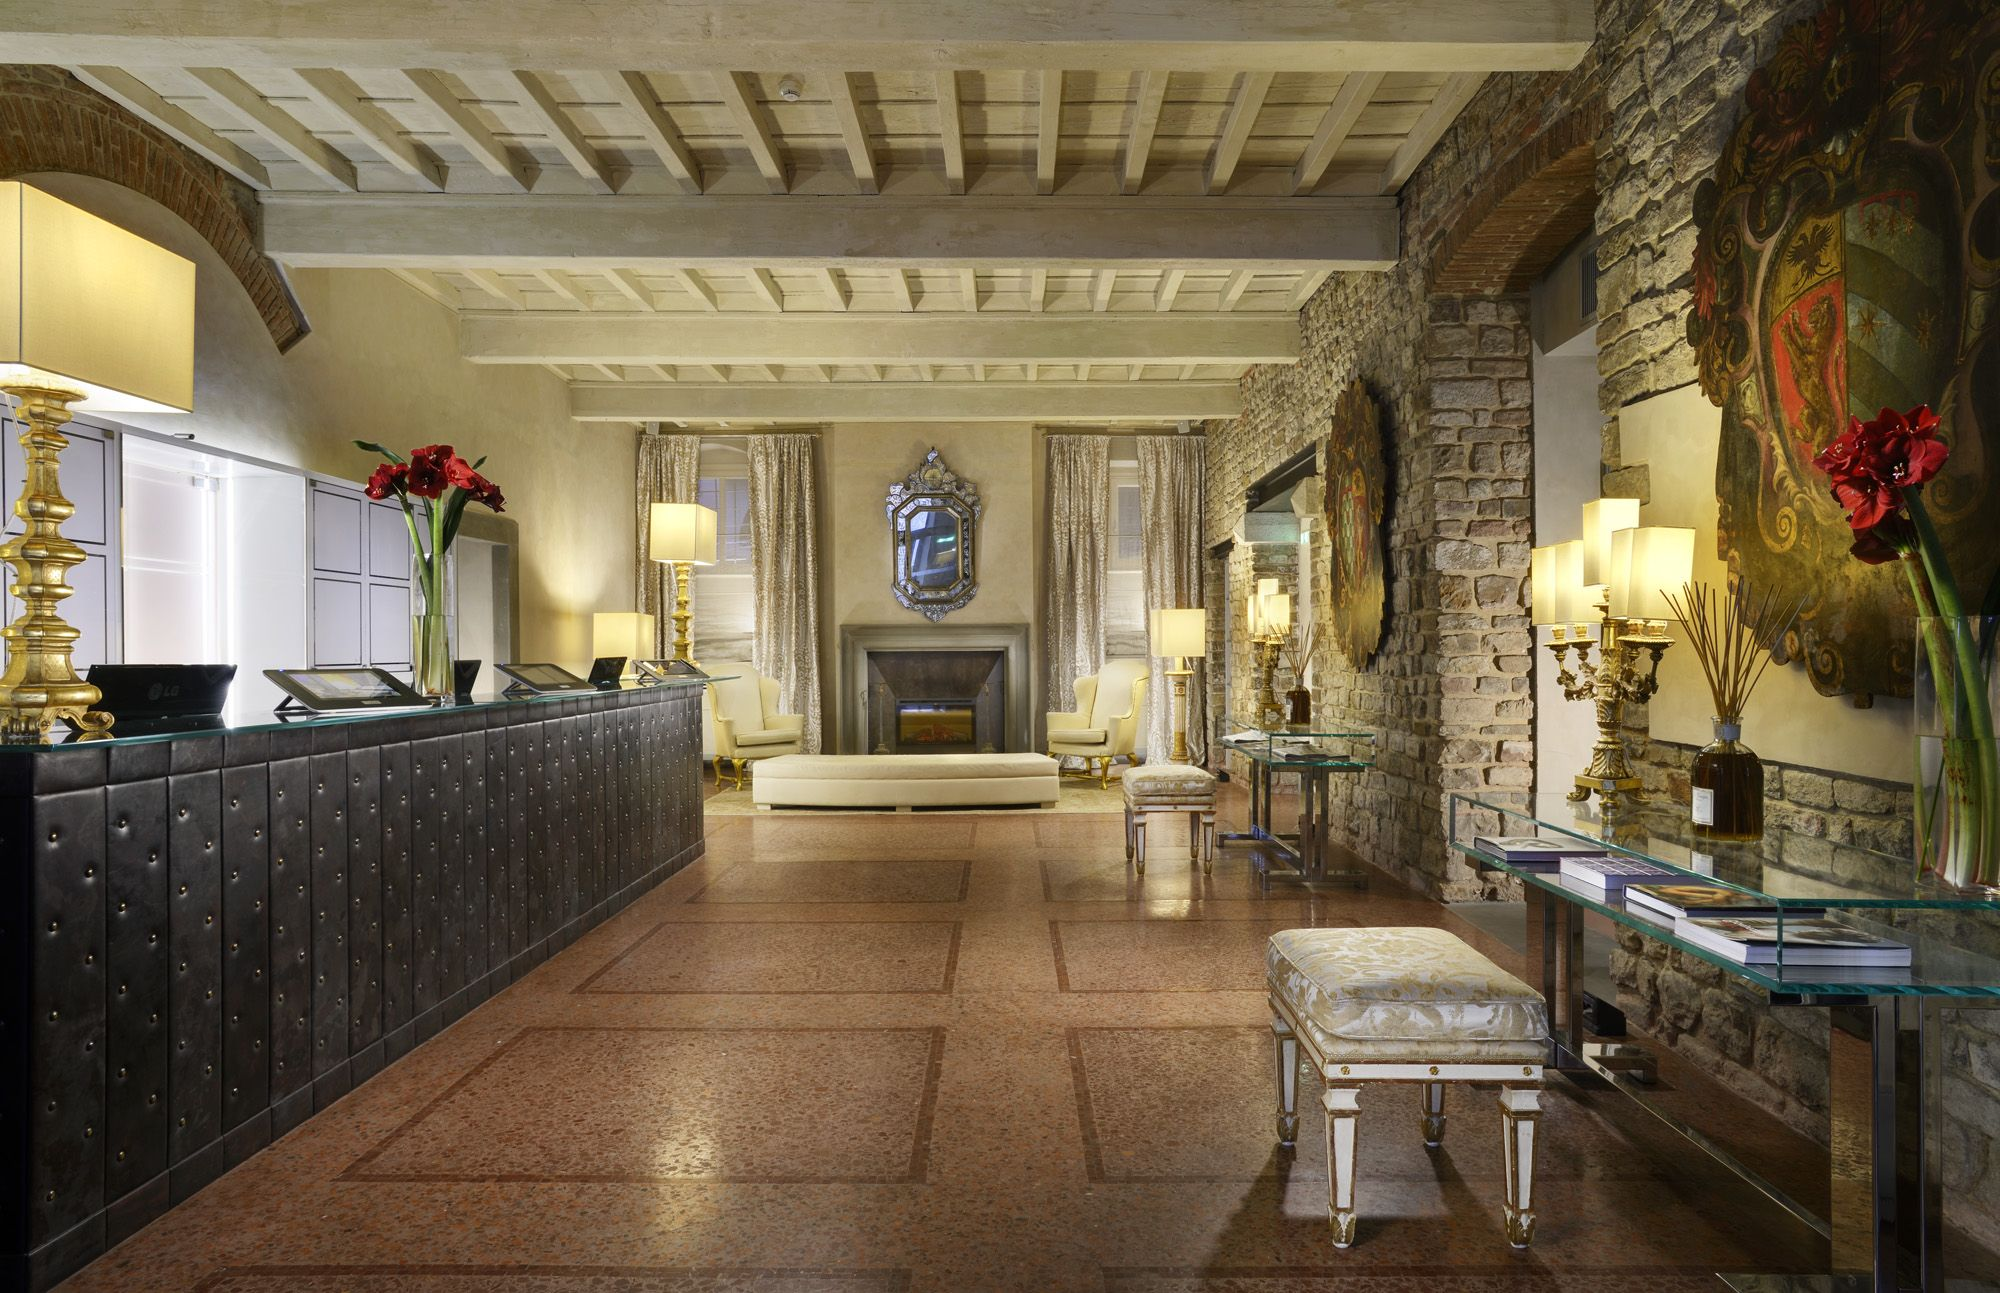 Albergo Firenze Florence Italy 4 Star Hotel In Florence Italy Boutique Luxury Hotel